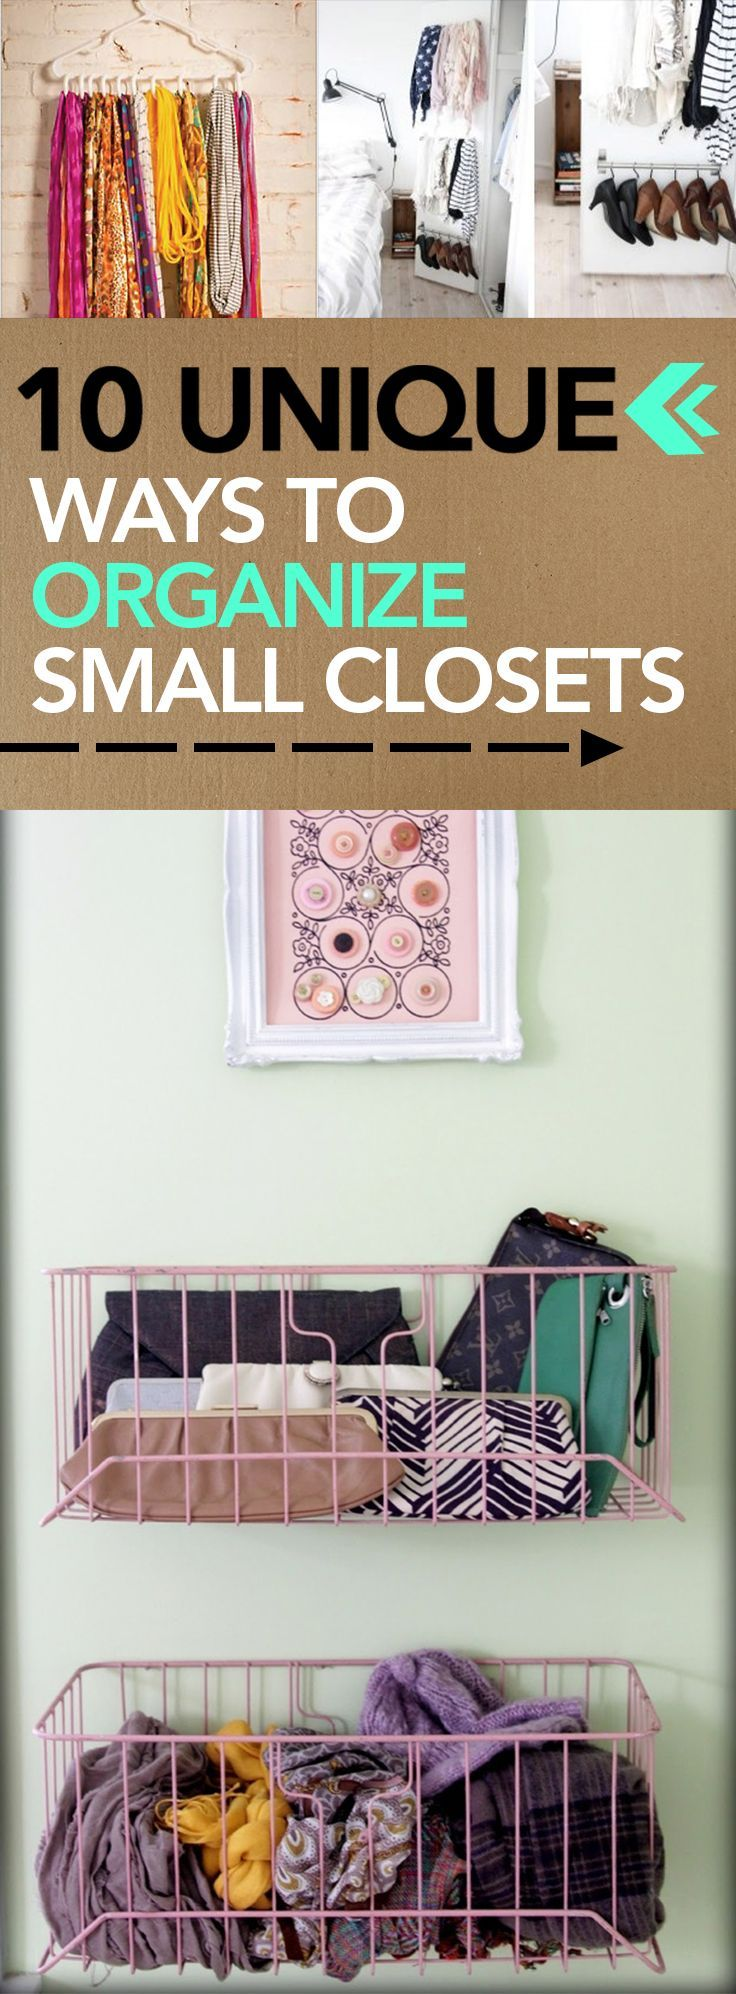 10 Unique Ways to Organize Small Closets -